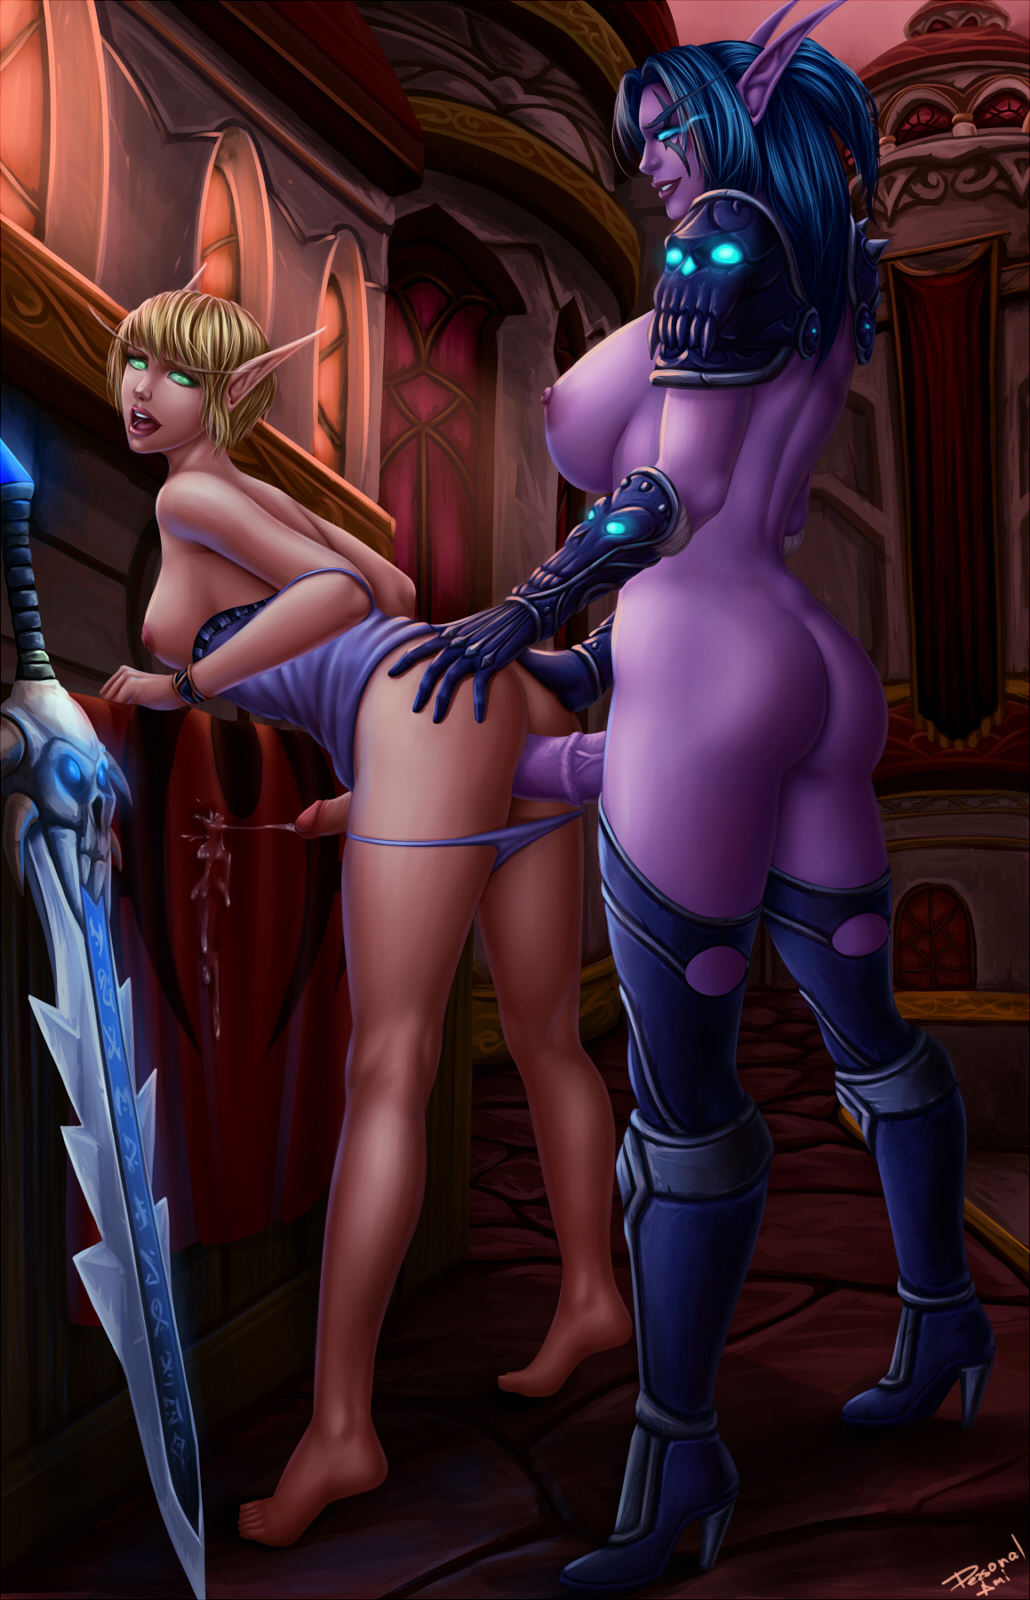 Night elf porn videos adult picture